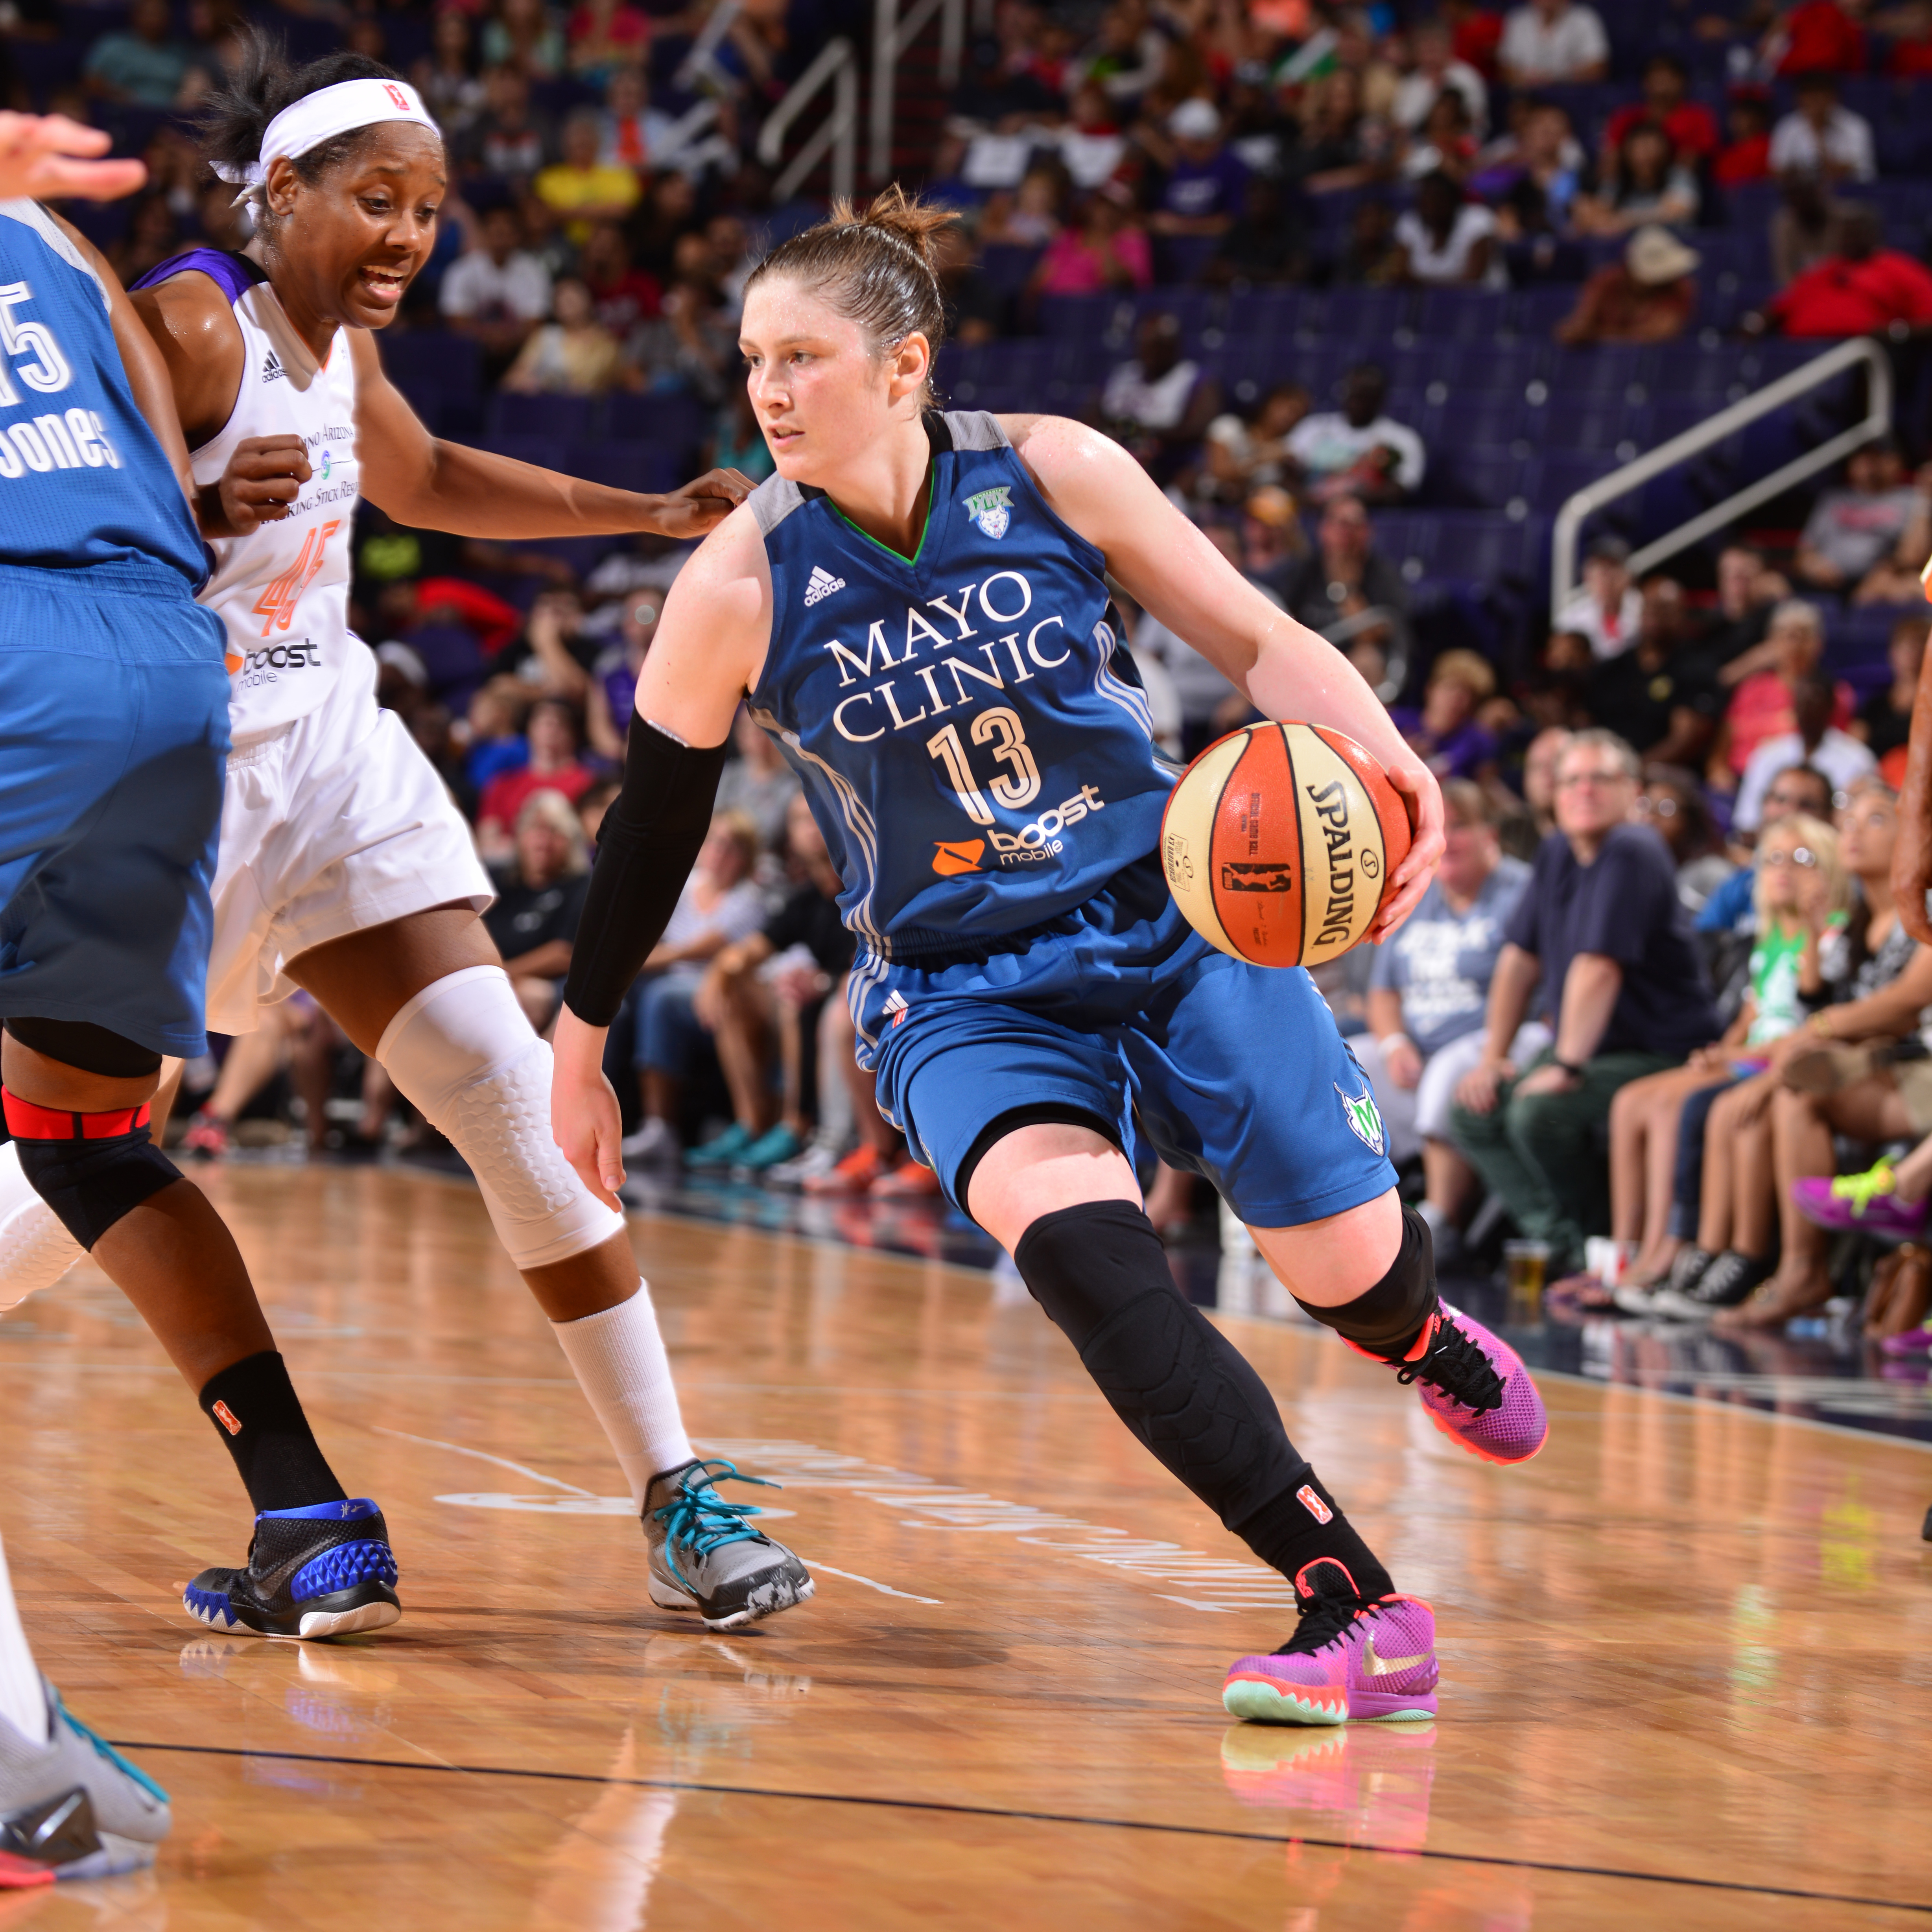 Lynx guard Lindsay Whalen entered Sunday night's game having a double-double in two of her past three games. Unfortunately, Whalen could not manage one tonight, finishing with six points, two rebounds and three assists.